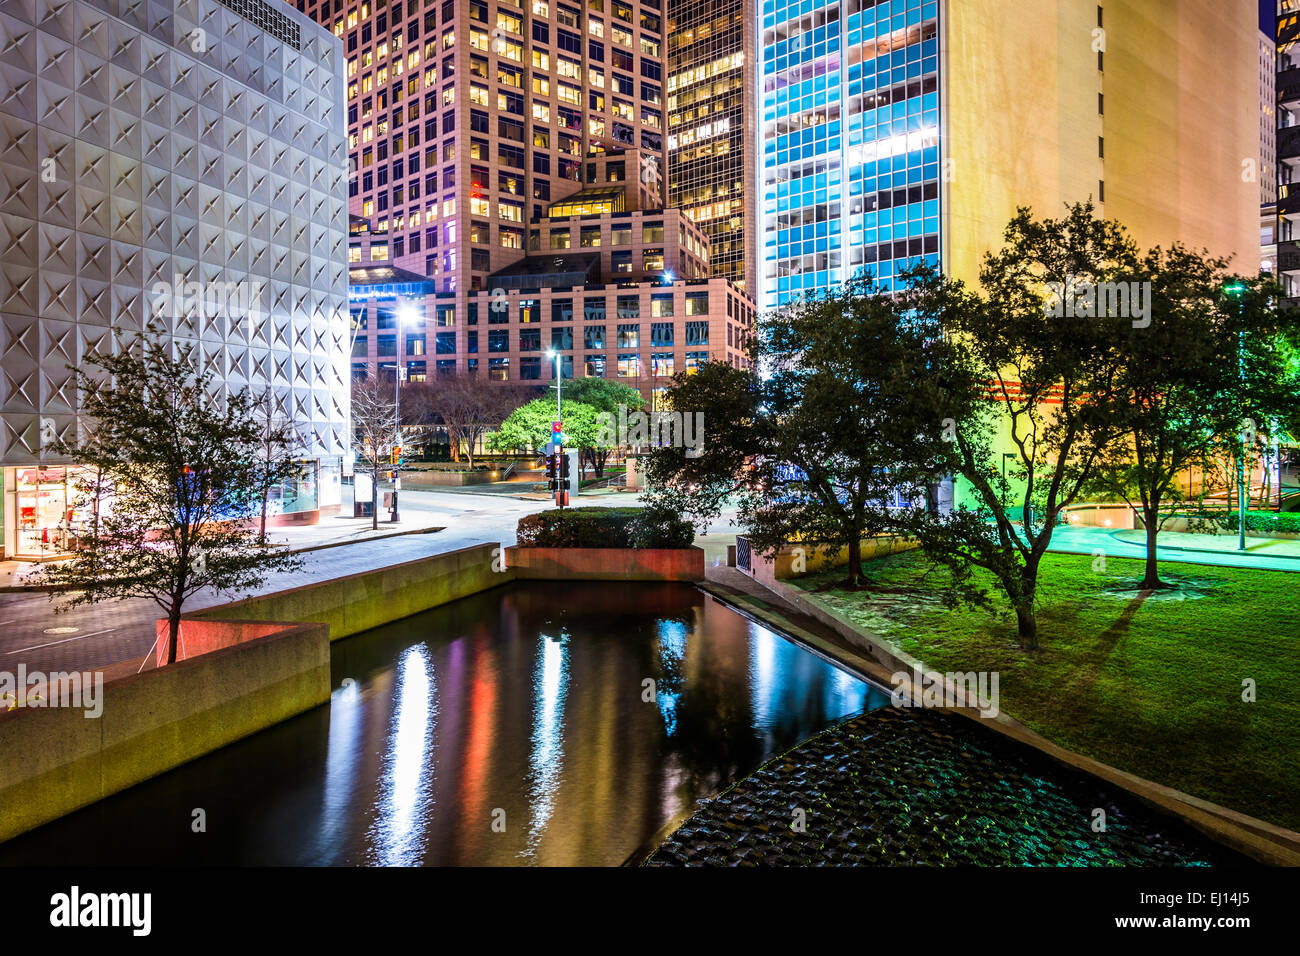 Buildings and pond at Thanks-Giving Square at night in Dallas, Texas. - Stock Image